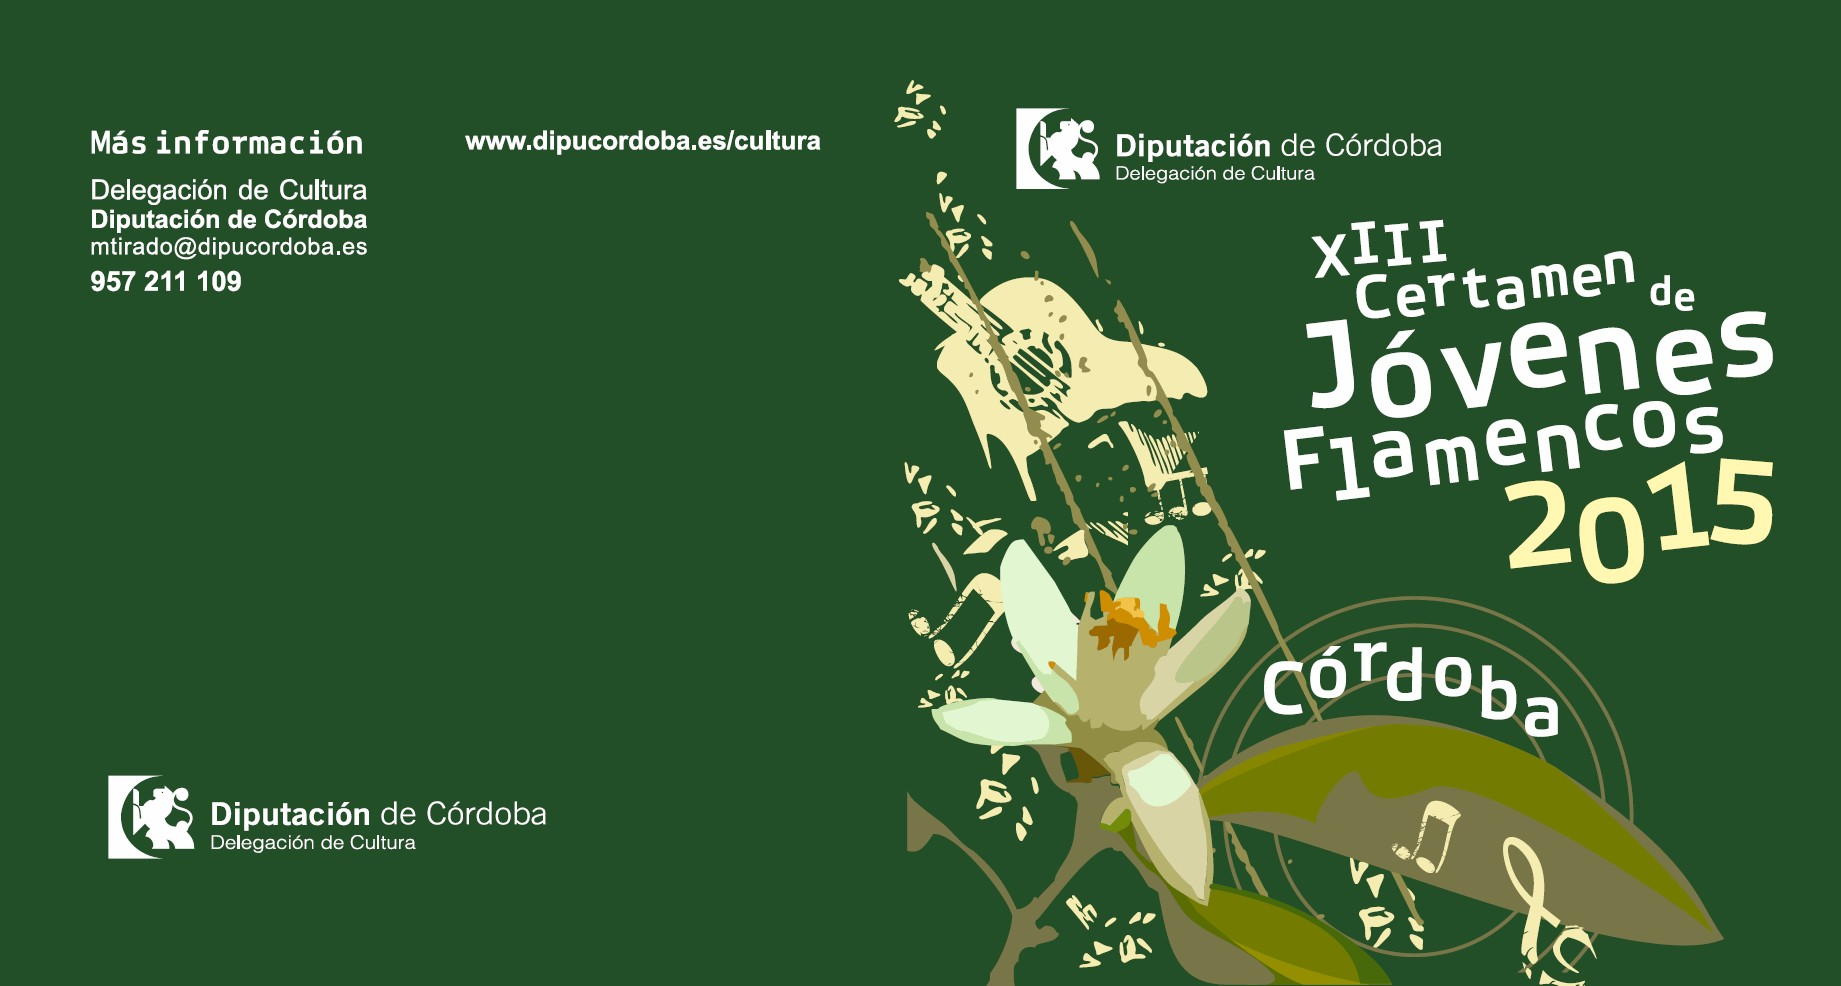 Pr ximos eventos xiii certamen de j venes flamencos 2015 for Inscripcion jardin 2015